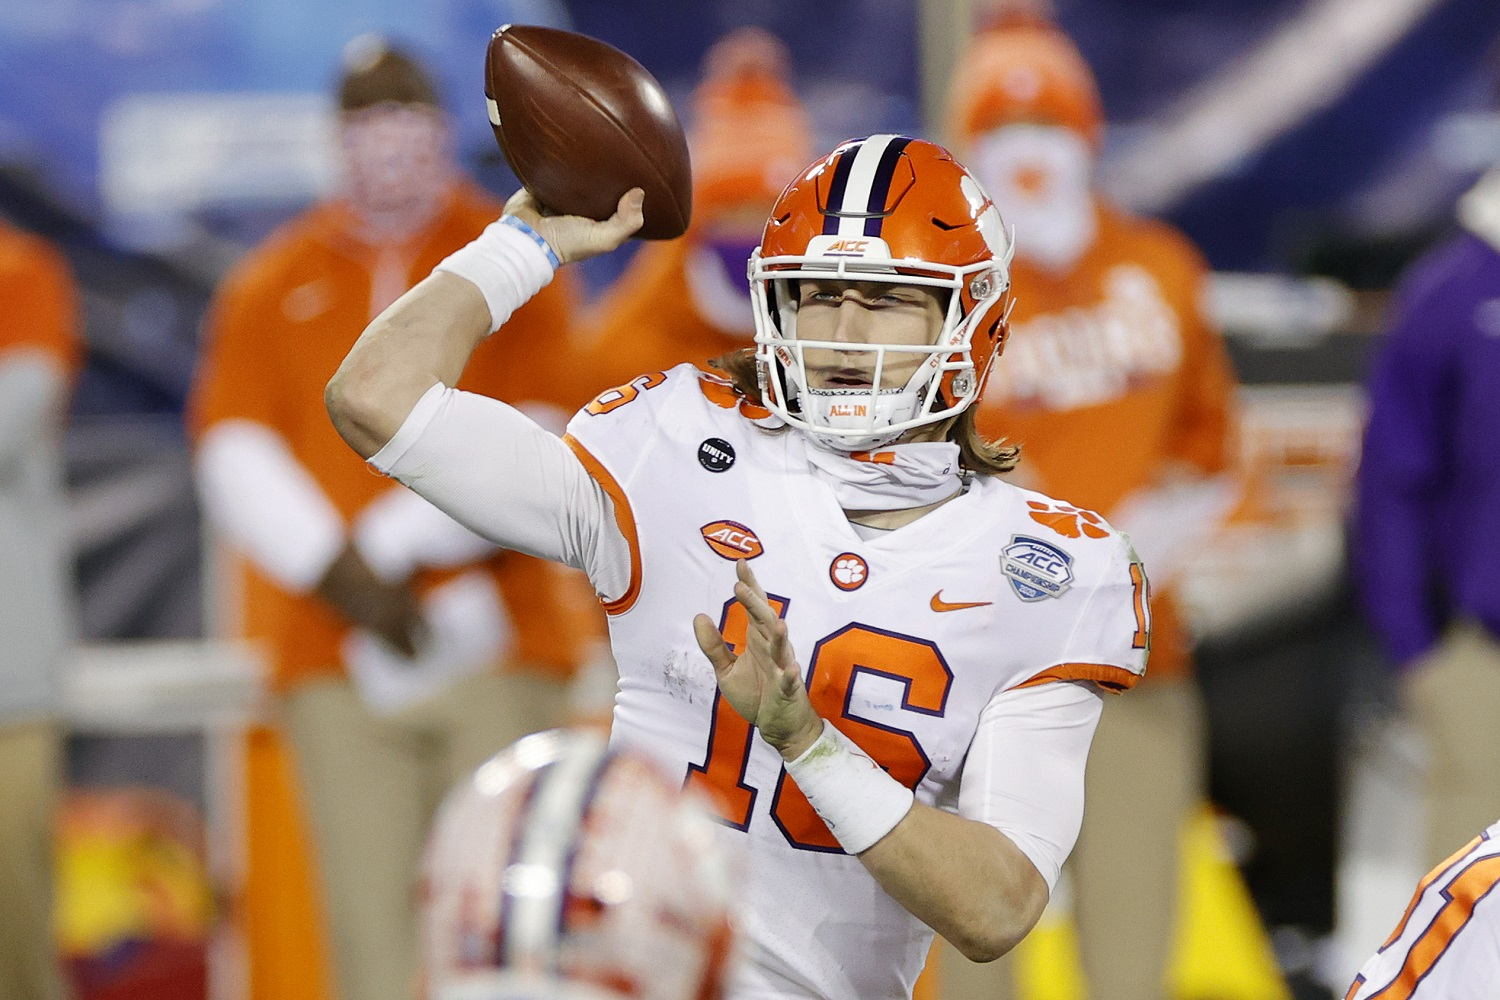 Trevor Lawrence of Clemson is expected to go to the Jacksonville Jaguars as the first pick in the NFL draft April 29.